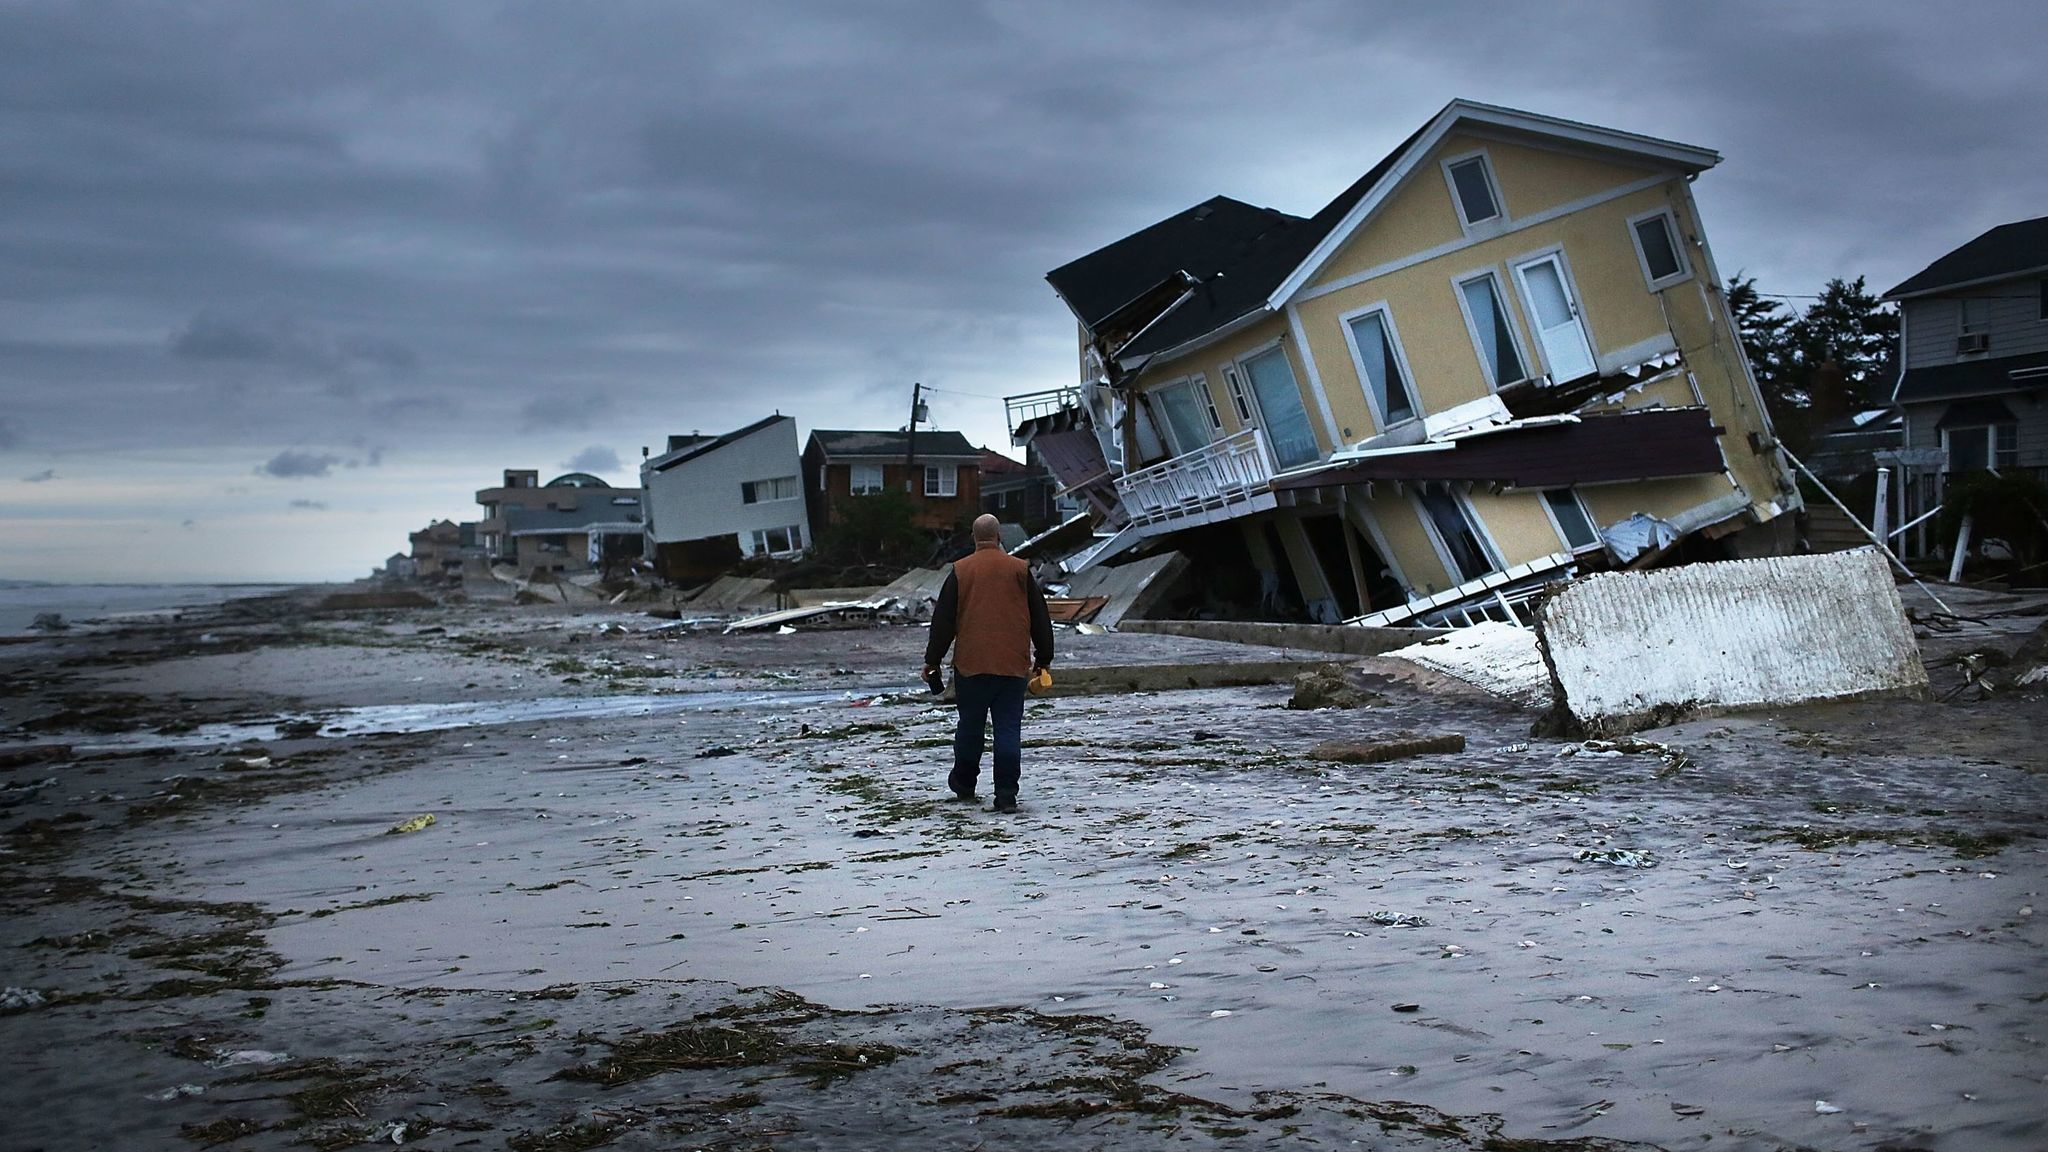 Damage is viewed in the Rockaway neighborhood of the Queens borough of New York City, where the historic boardwalk was washed away during Hurricane Sandy.